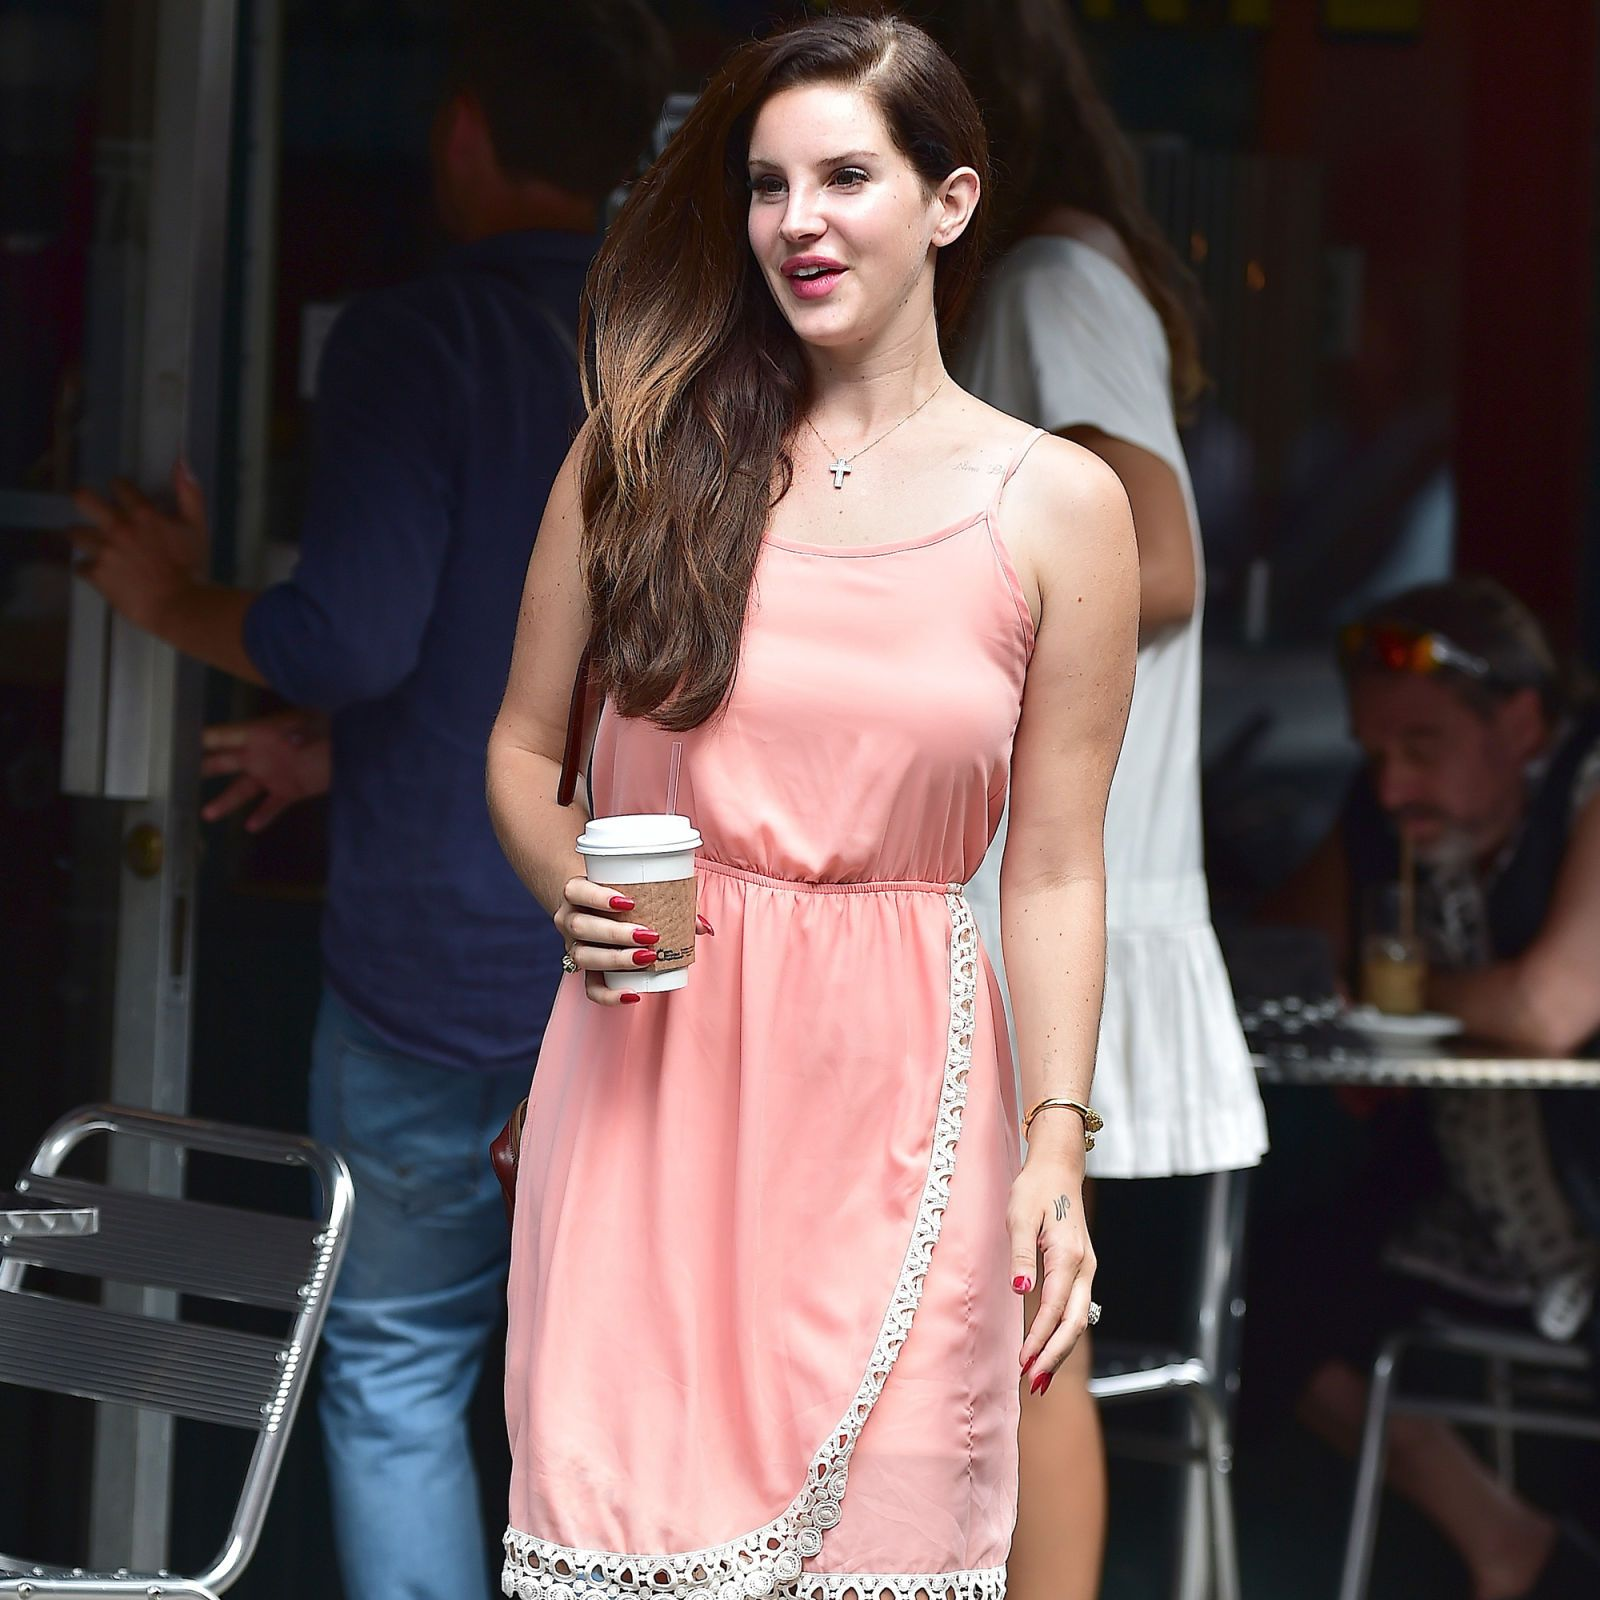 In Soho on Sept. 5, 2014 in New York City.